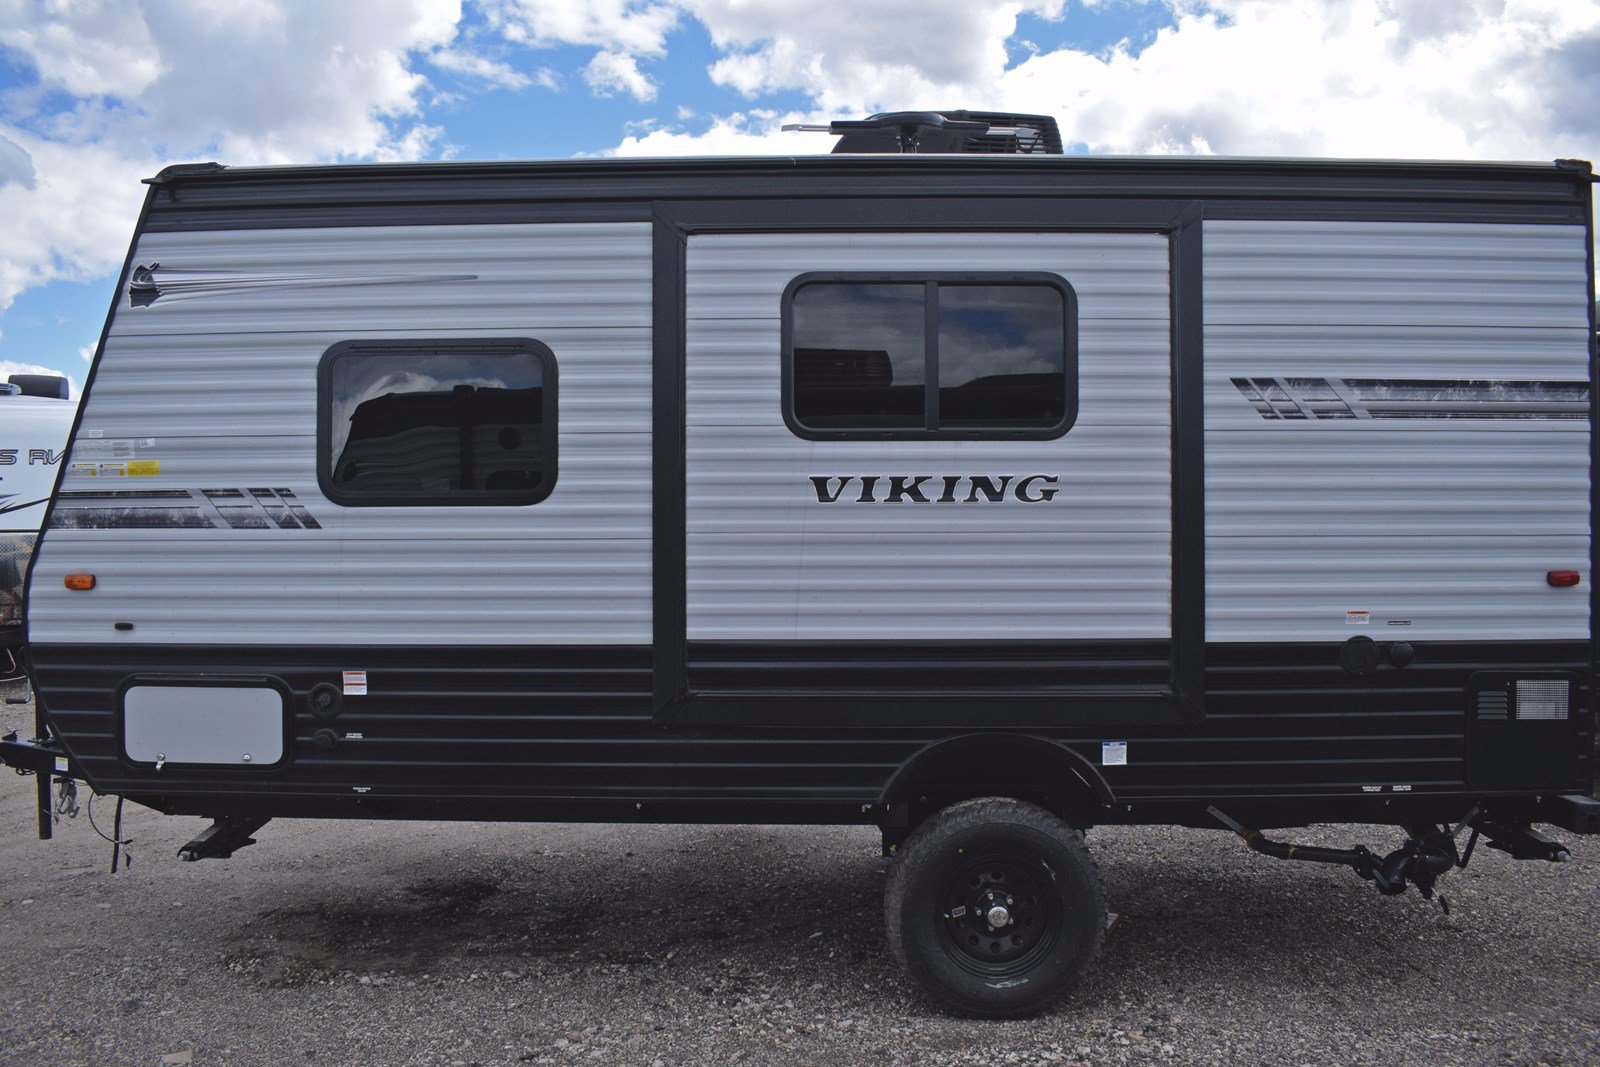 New 2019 COACHMEN VIKING 17RBSS